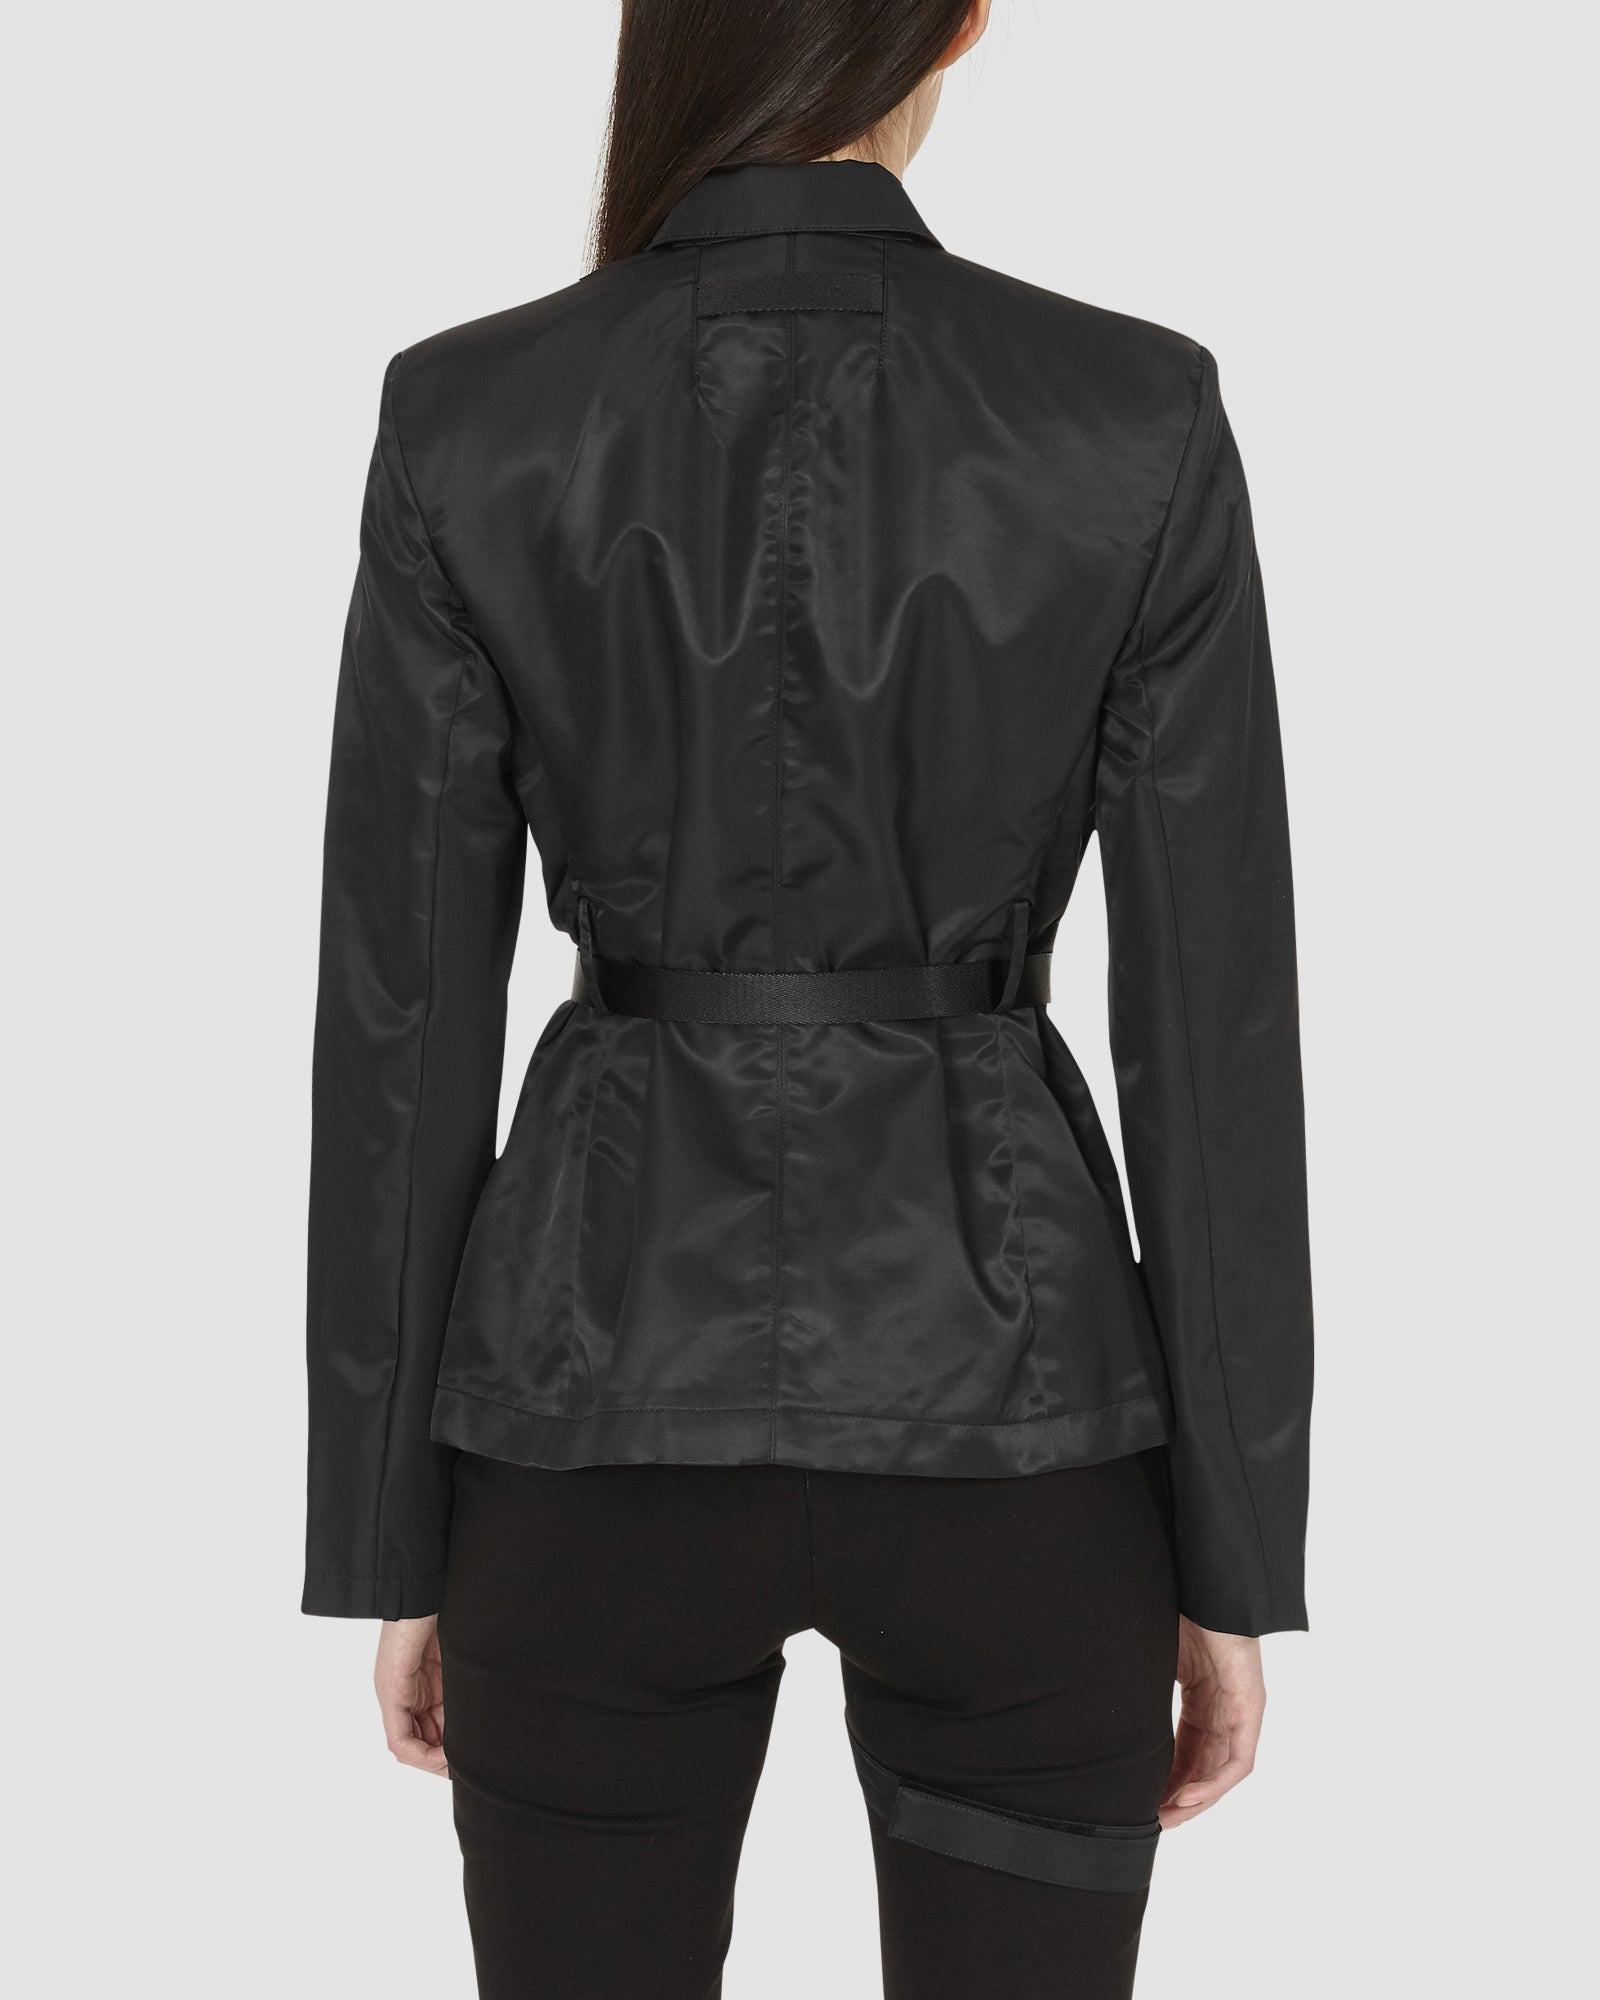 1017 ALYX 9SM | BLACK NYLON BLAZER | Blazer | BLACK, Blazer, Google Shopping, S20, S20EXSH, TAILORING, Woman, WOMEN